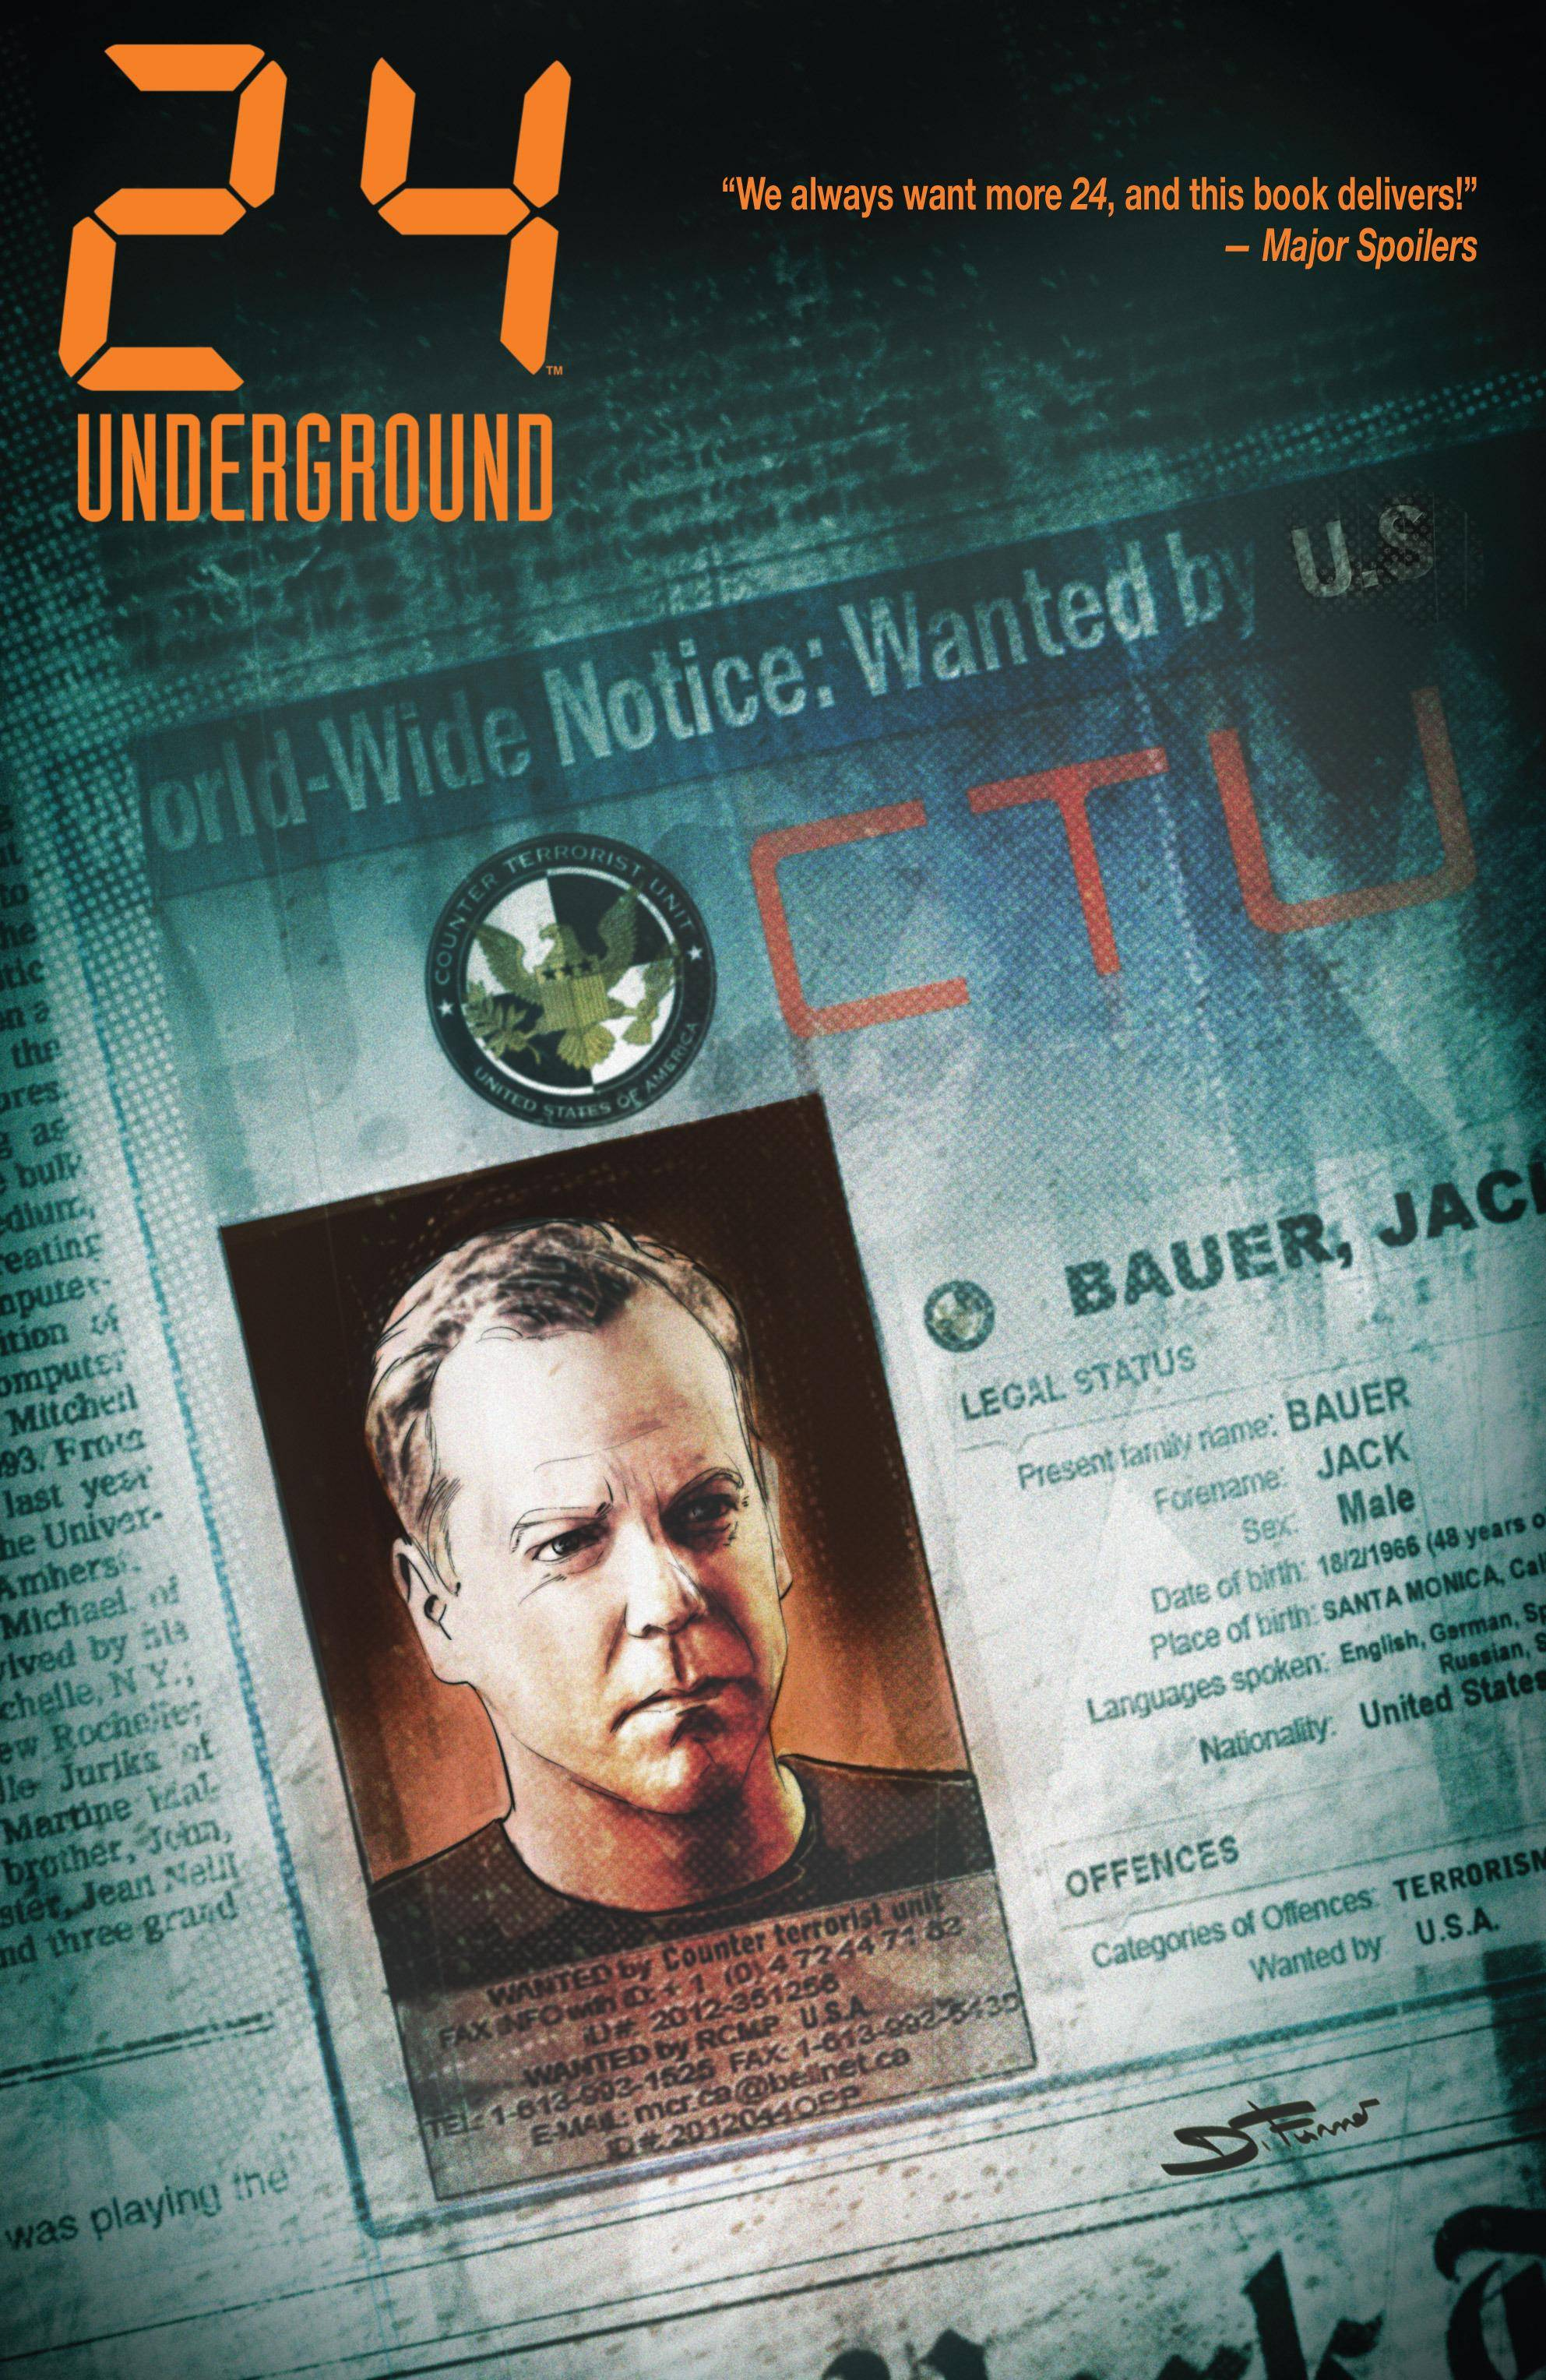 24-Underground.2014.Digital.Asgard-Empire